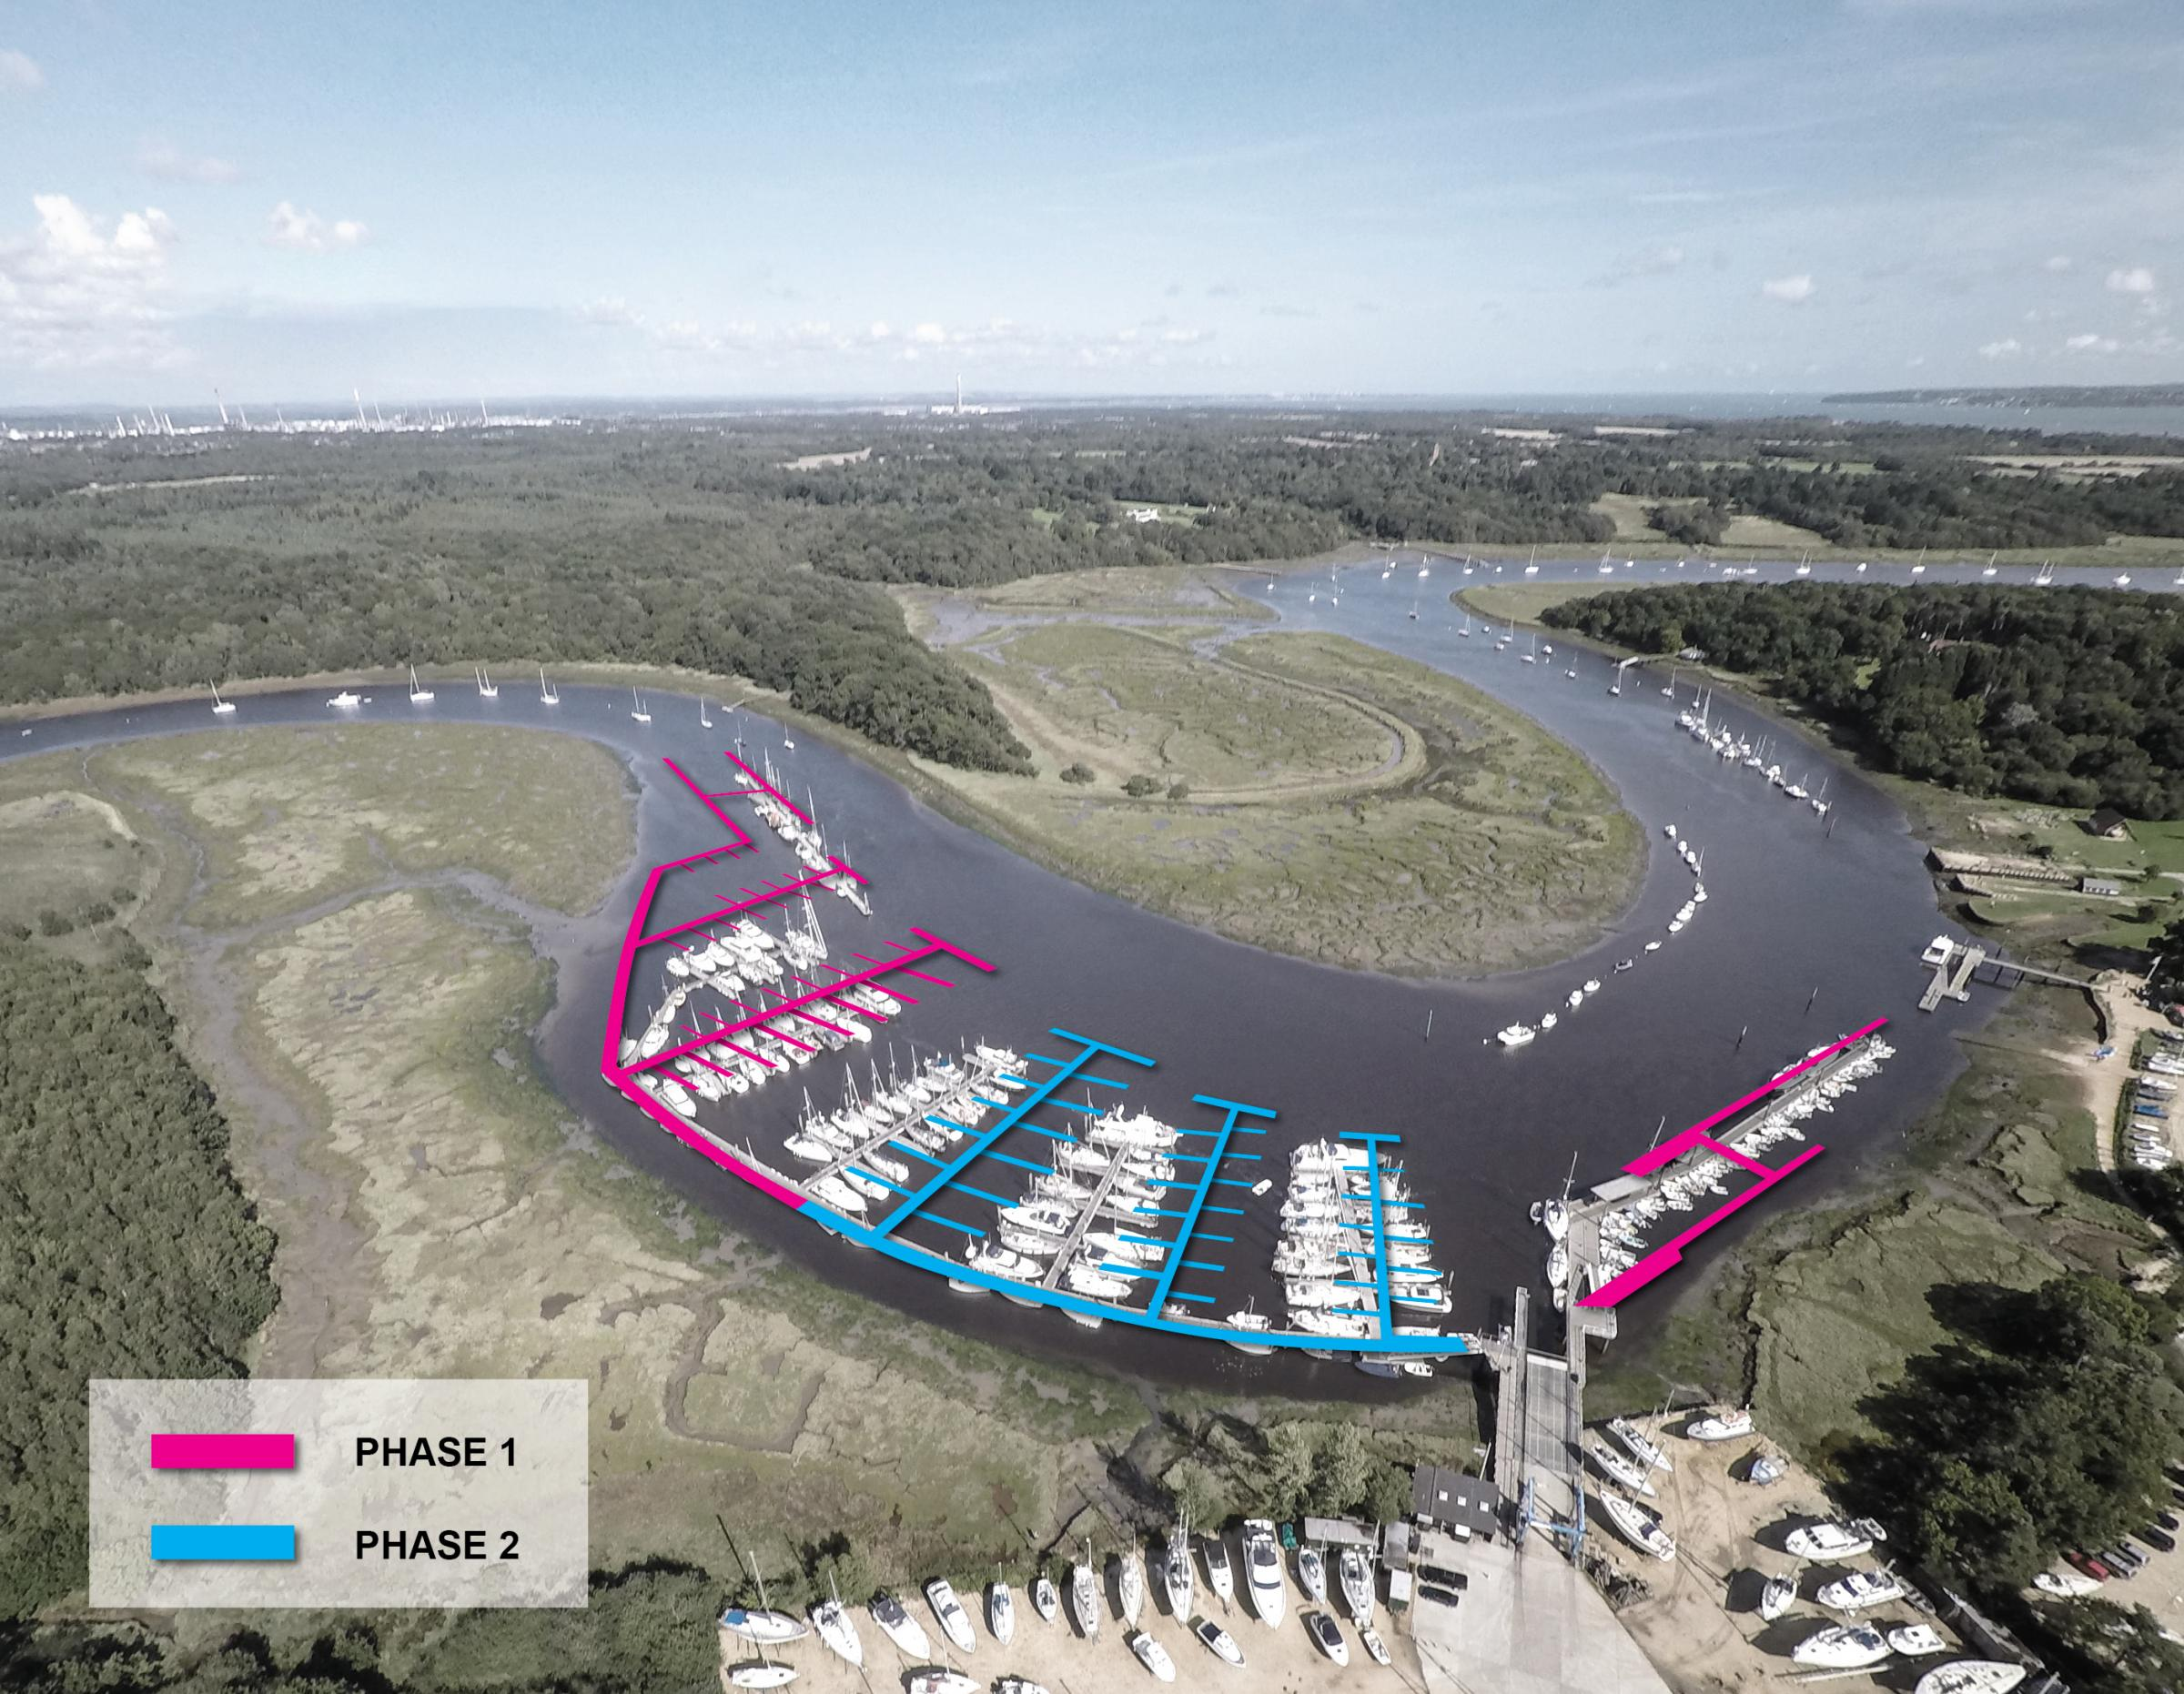 £2m works to start on extending marina on private river